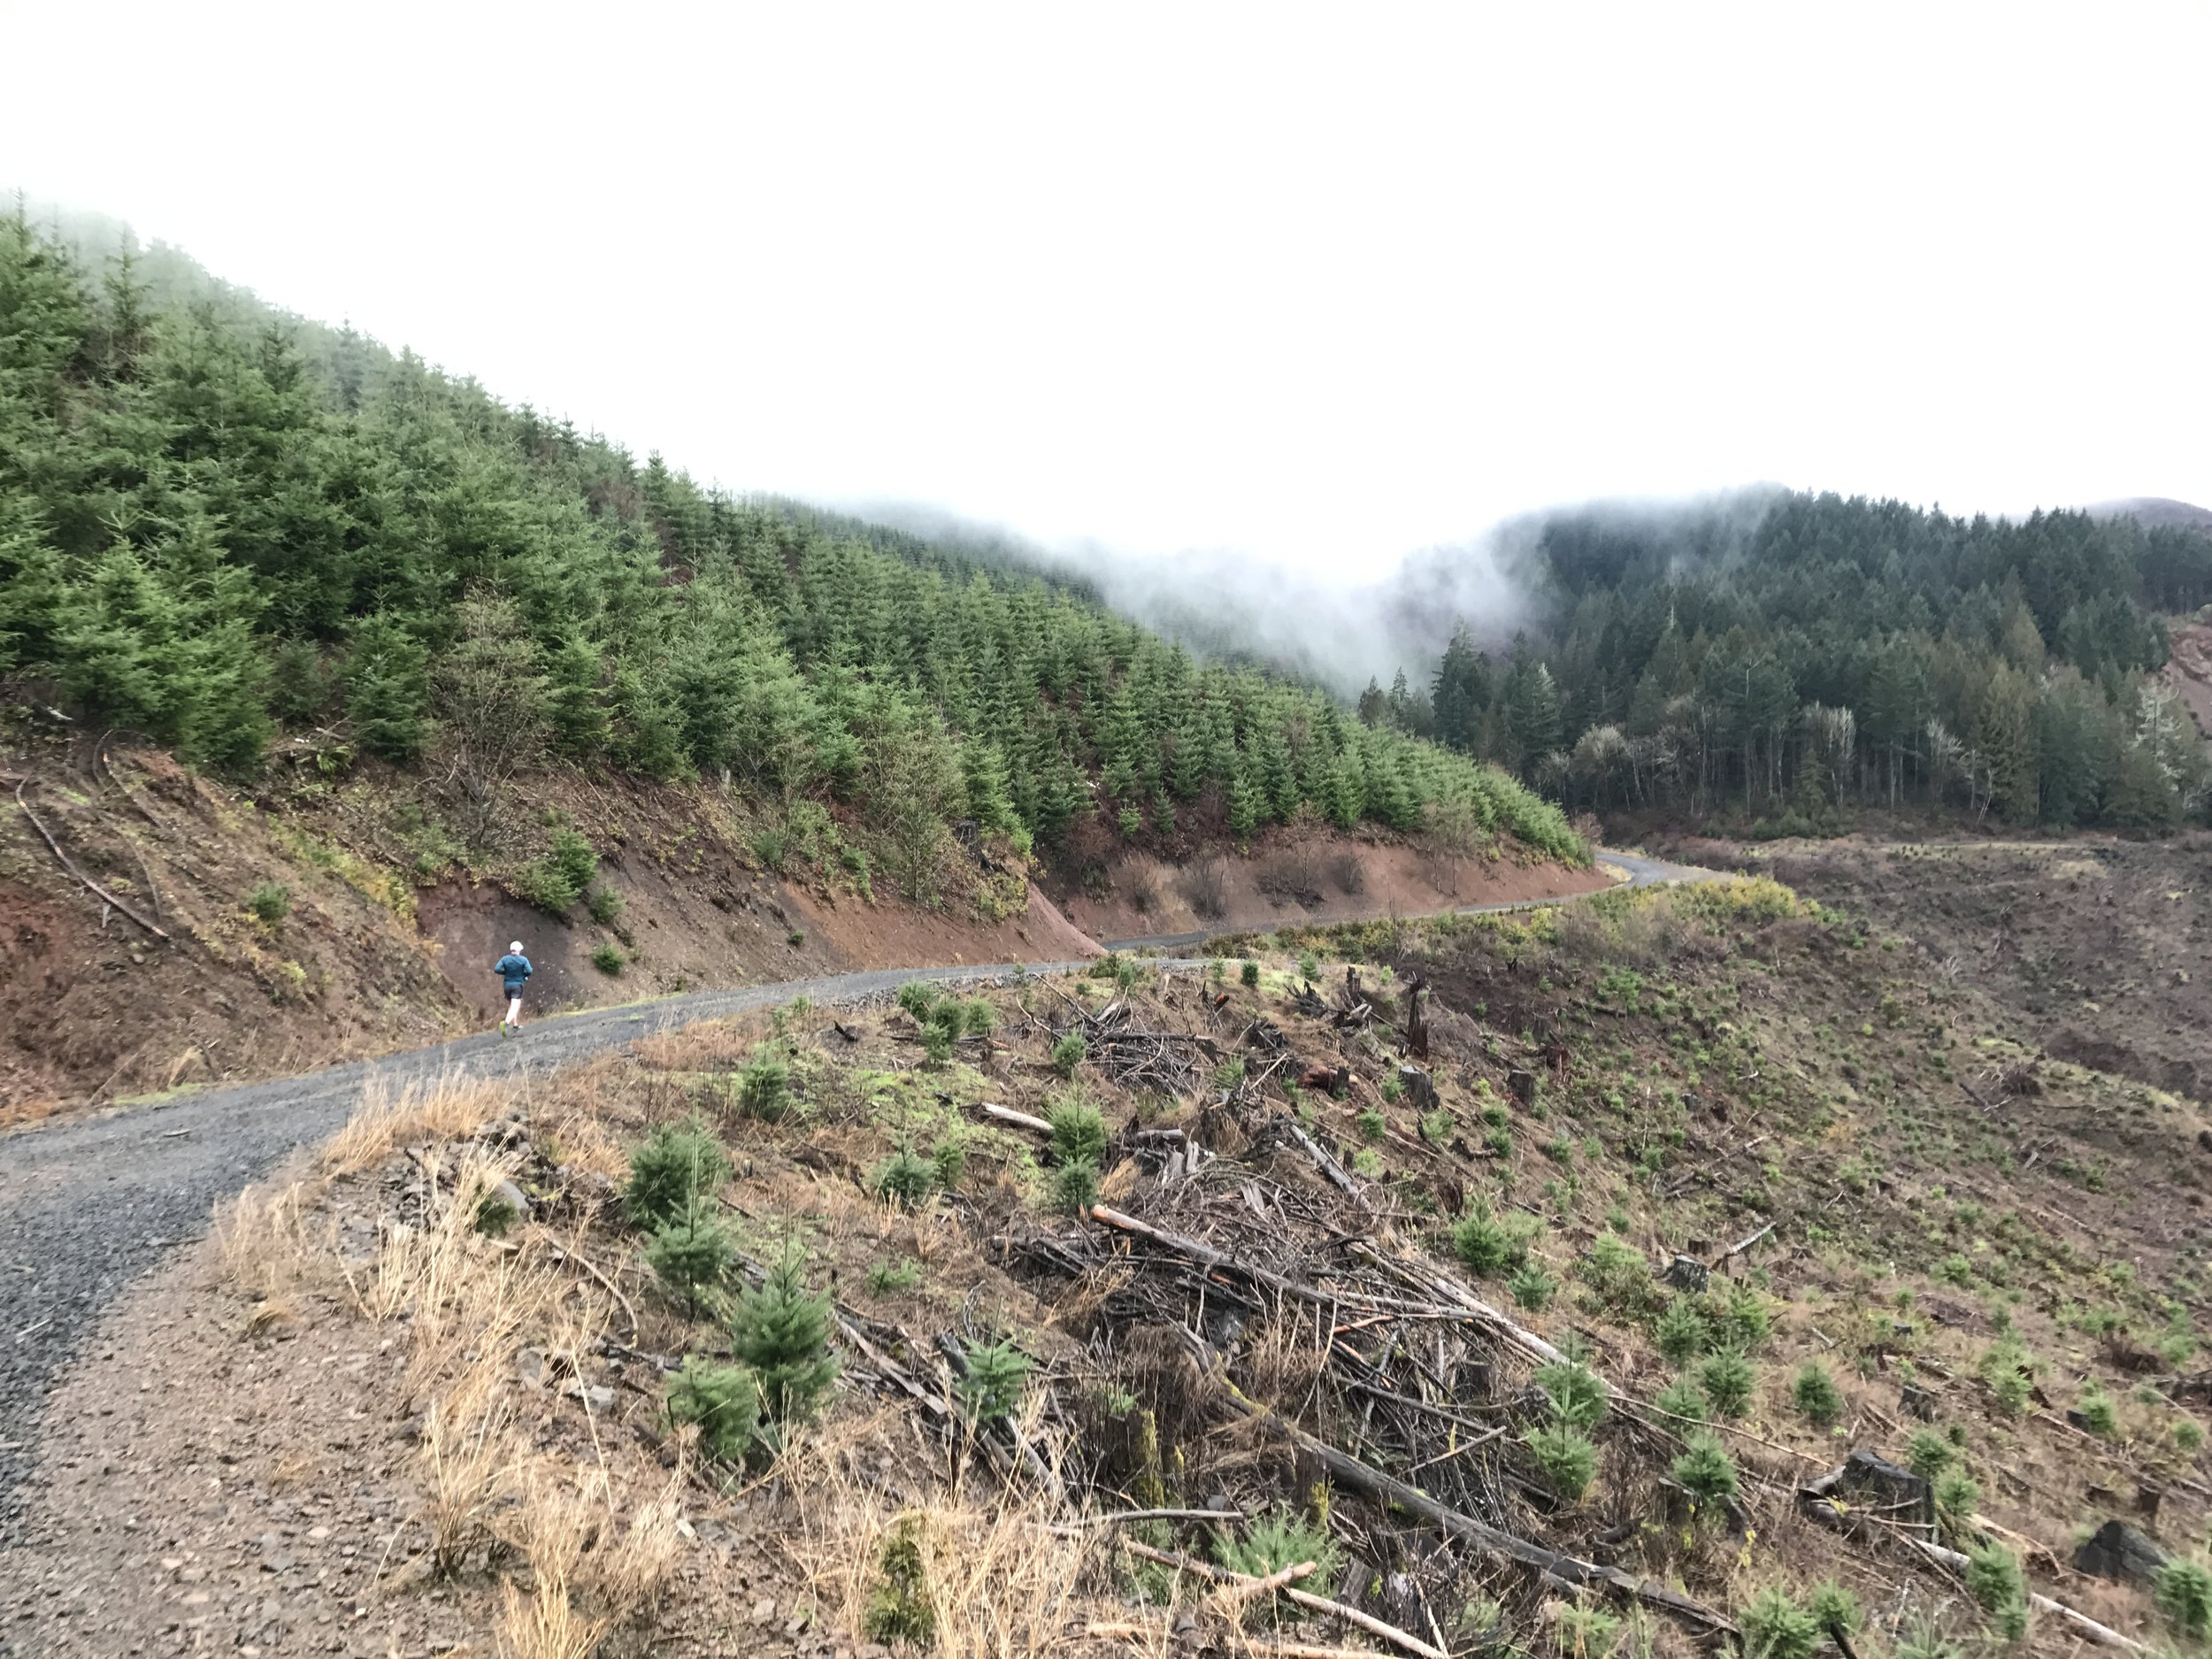 Jeremy Long cruising the forest roads near the Tillamook Forest - Forest Grove, OR